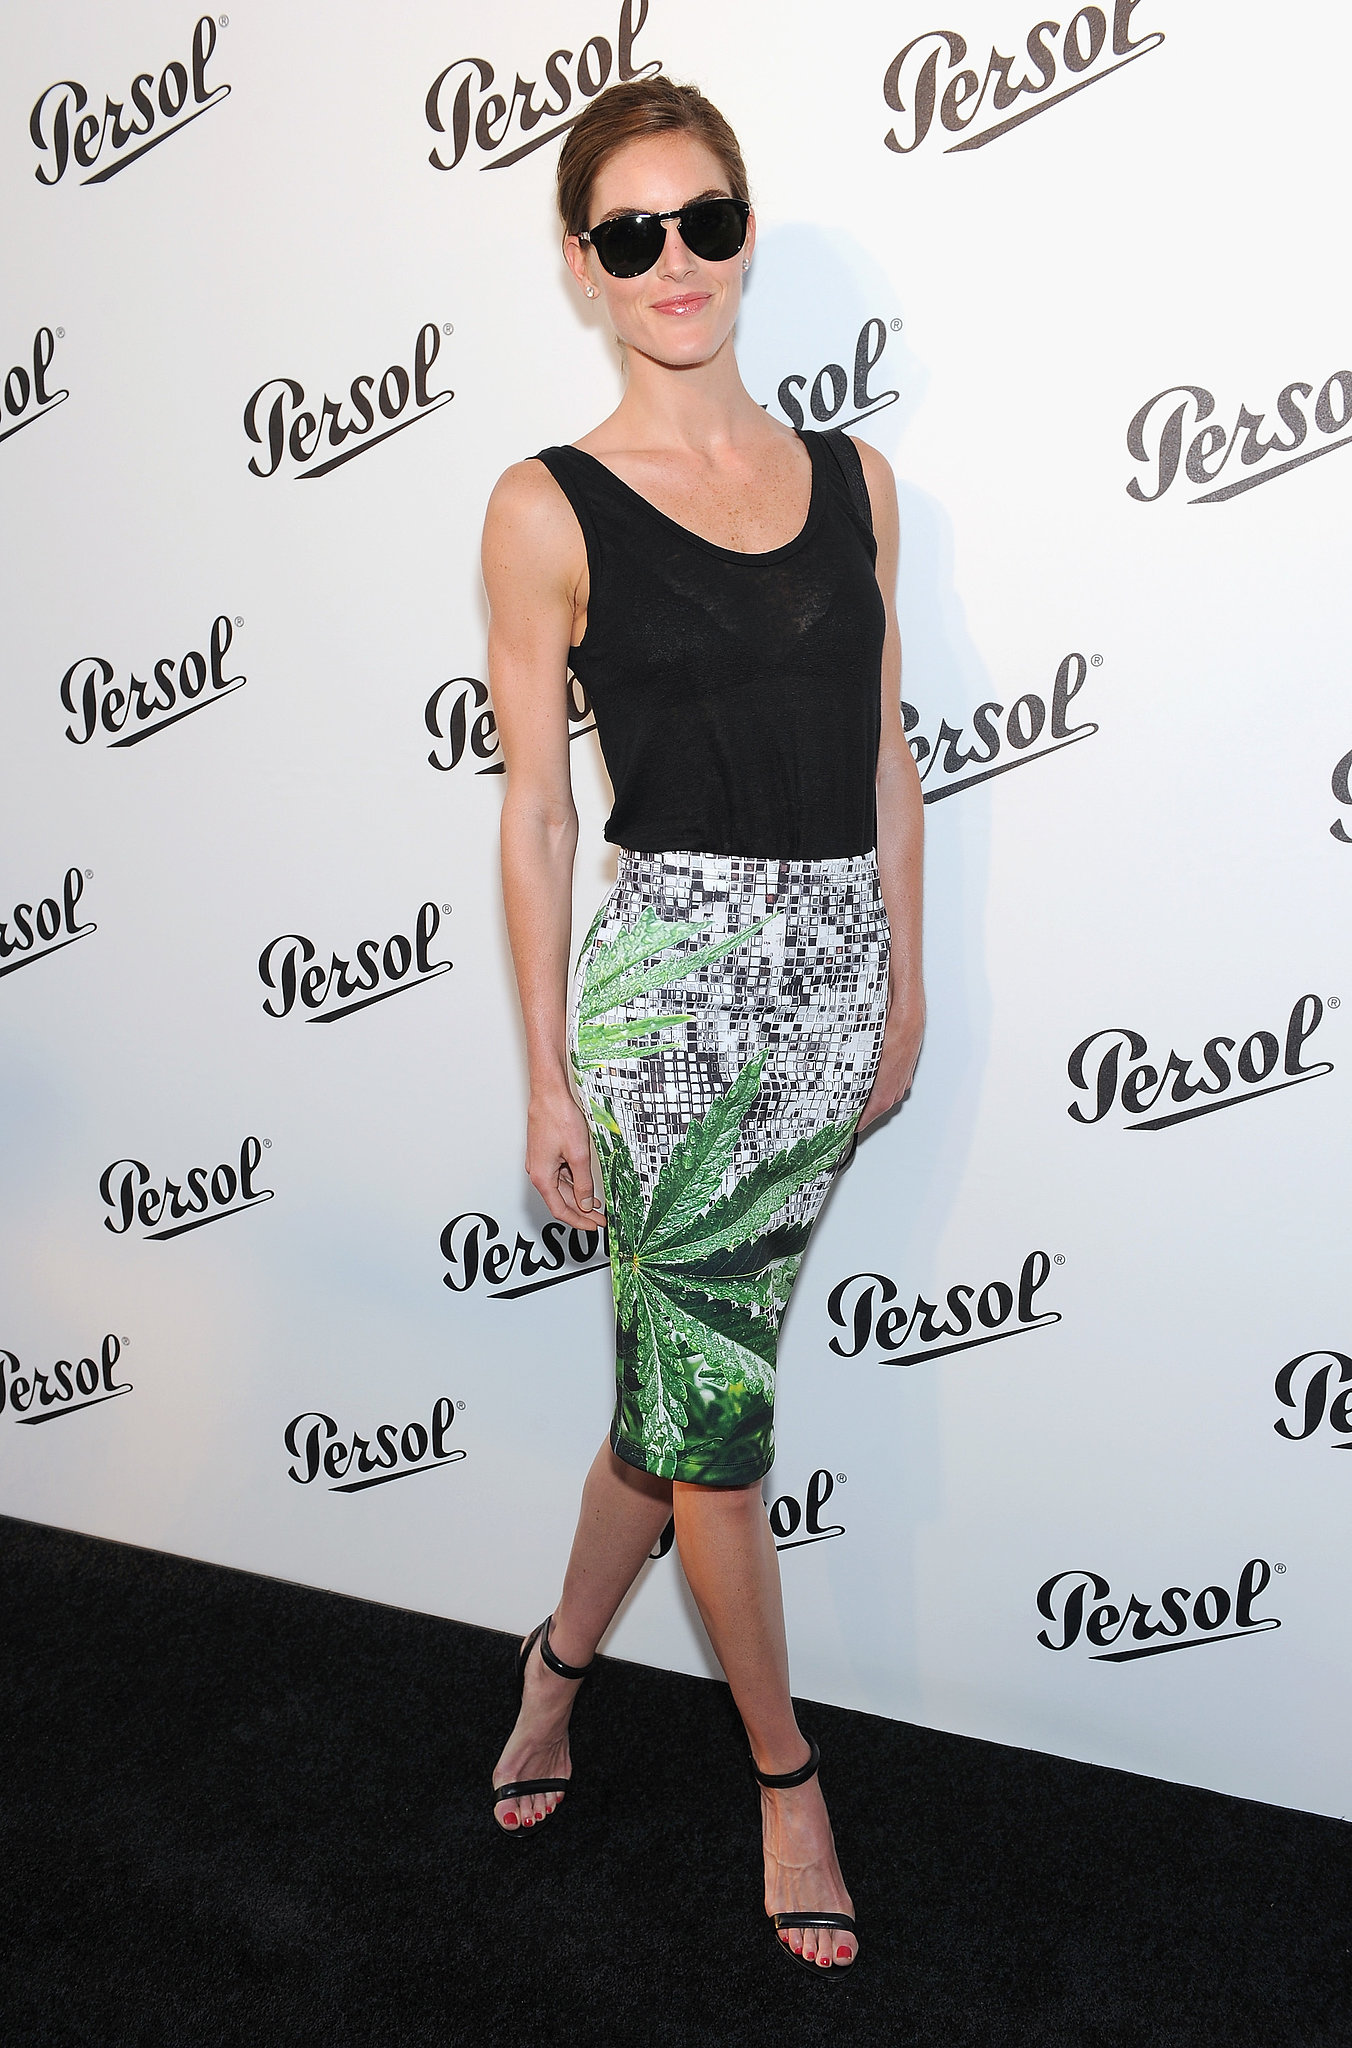 Hilary Rhoda accessorized her summery separates with a striking set of shades at the Persol party.